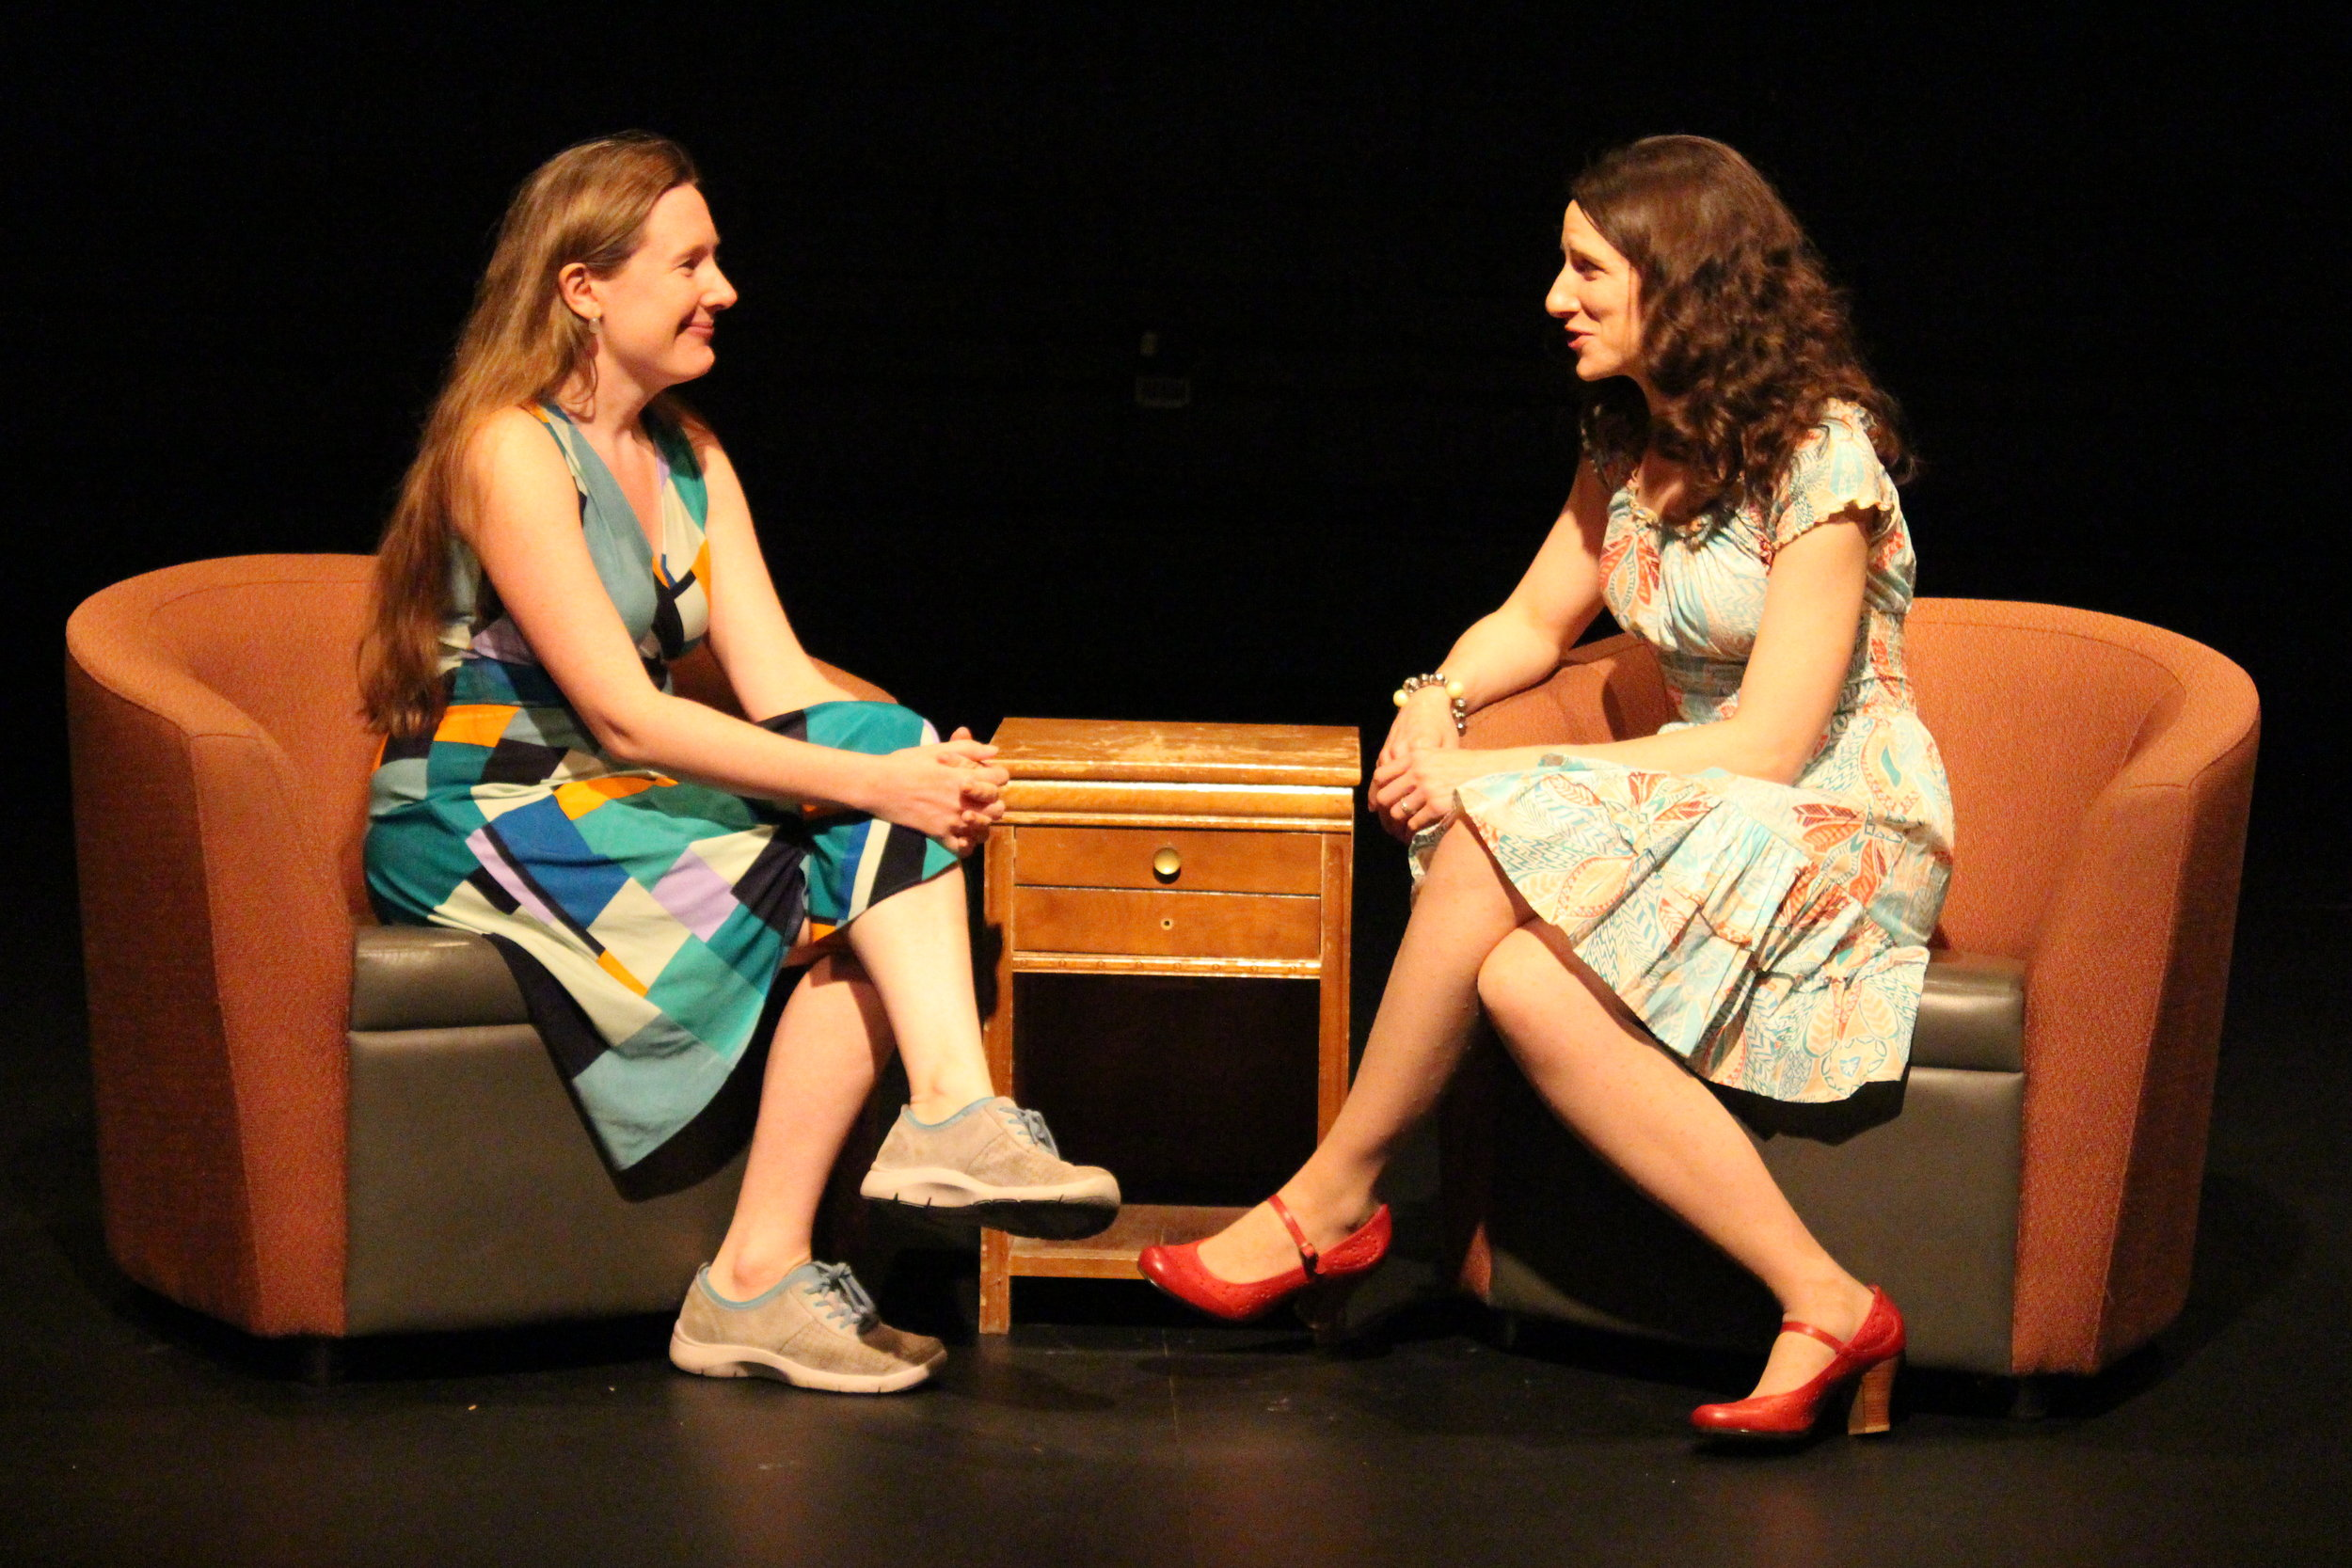 Julie Tepperman interviewing Playwright Sarah Ruhl, live onstage at Tarragon Theatre (June 22, 2013)